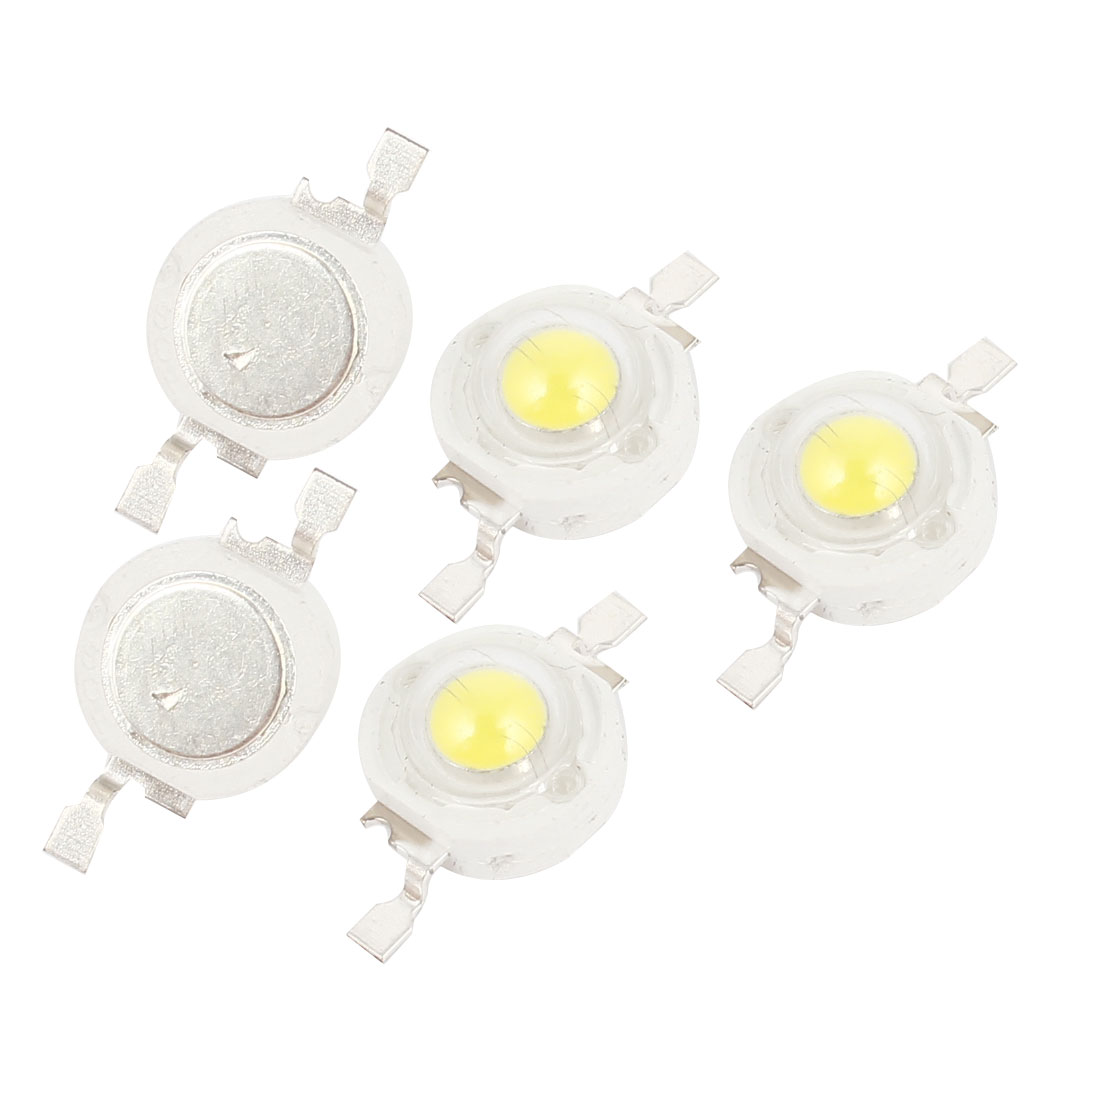 1W Energy Saving White LED Lamp Light Beads Emitter 100-110LM 5pcs